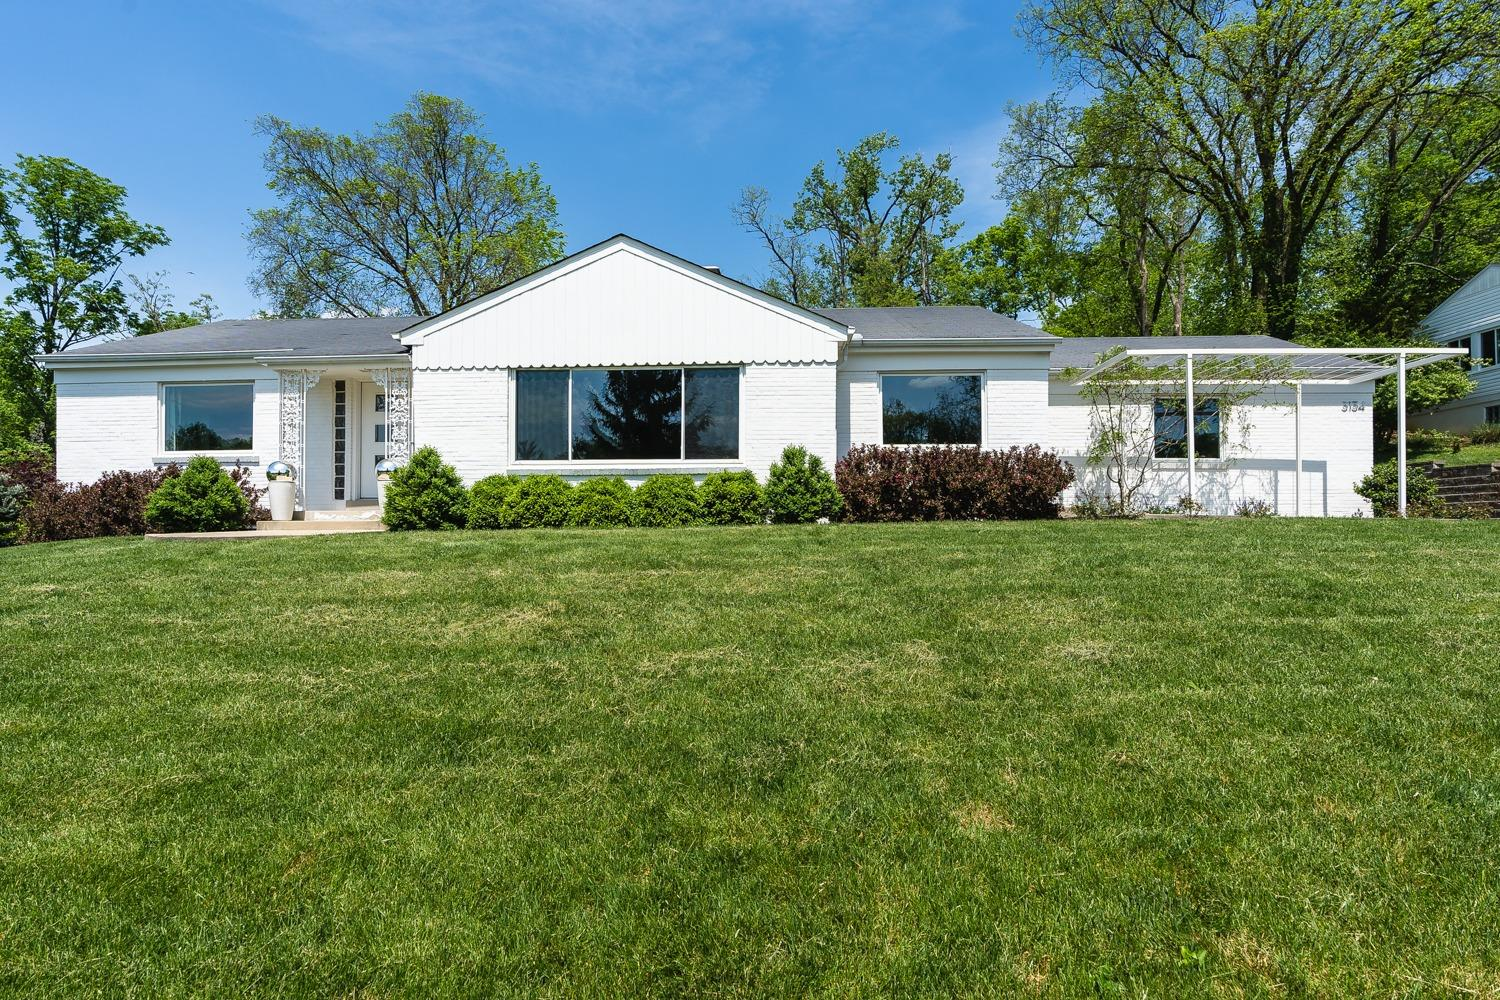 Photo 1 for 3134 S Farmcrest Dr Amberley, OH 45213